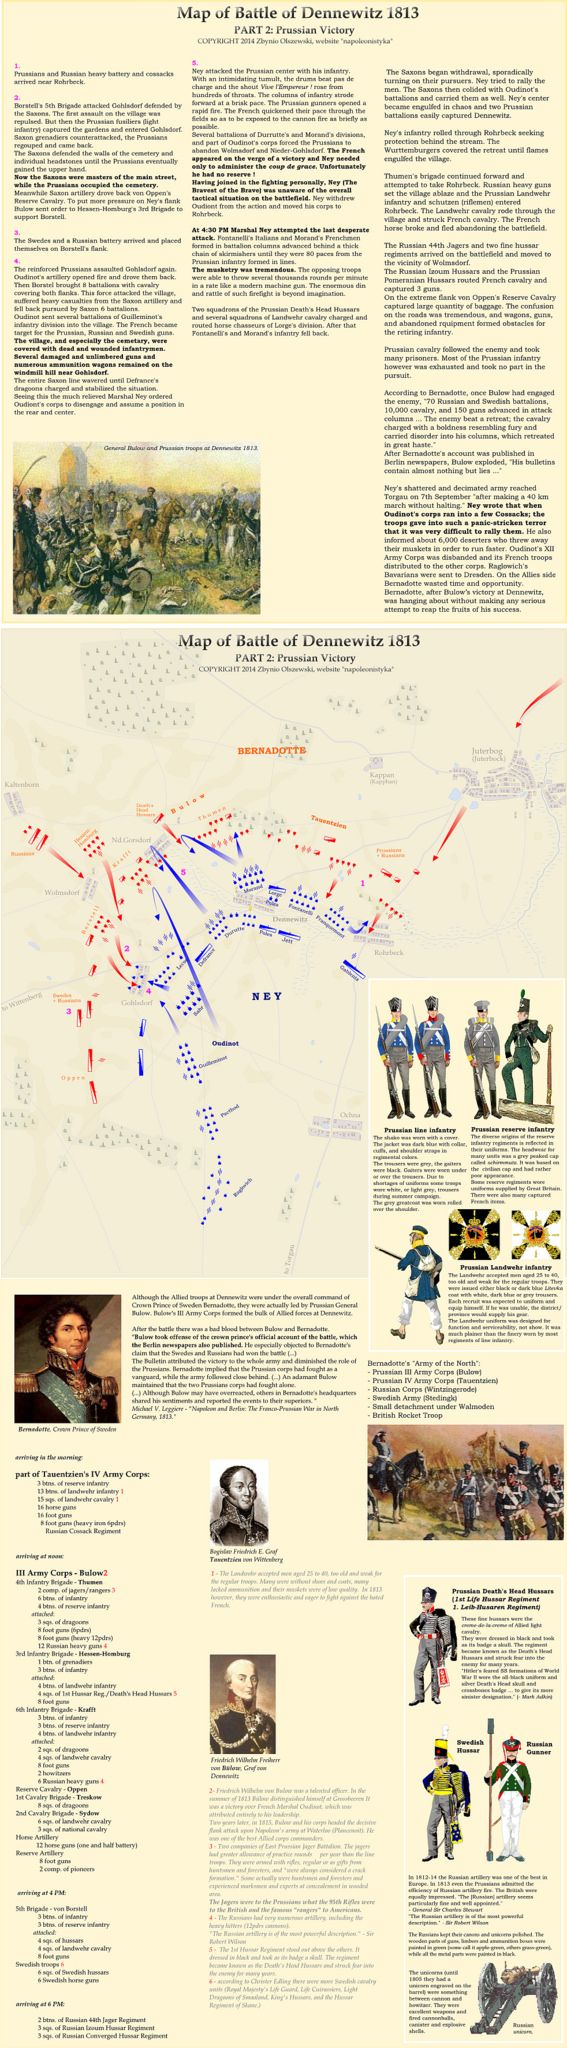 Battle of Dennewitz 1813 (click the link to read it better https://www.flickr.com/photos/lakota_sioux_and_comanche_indians/15469681283/sizes/o/)